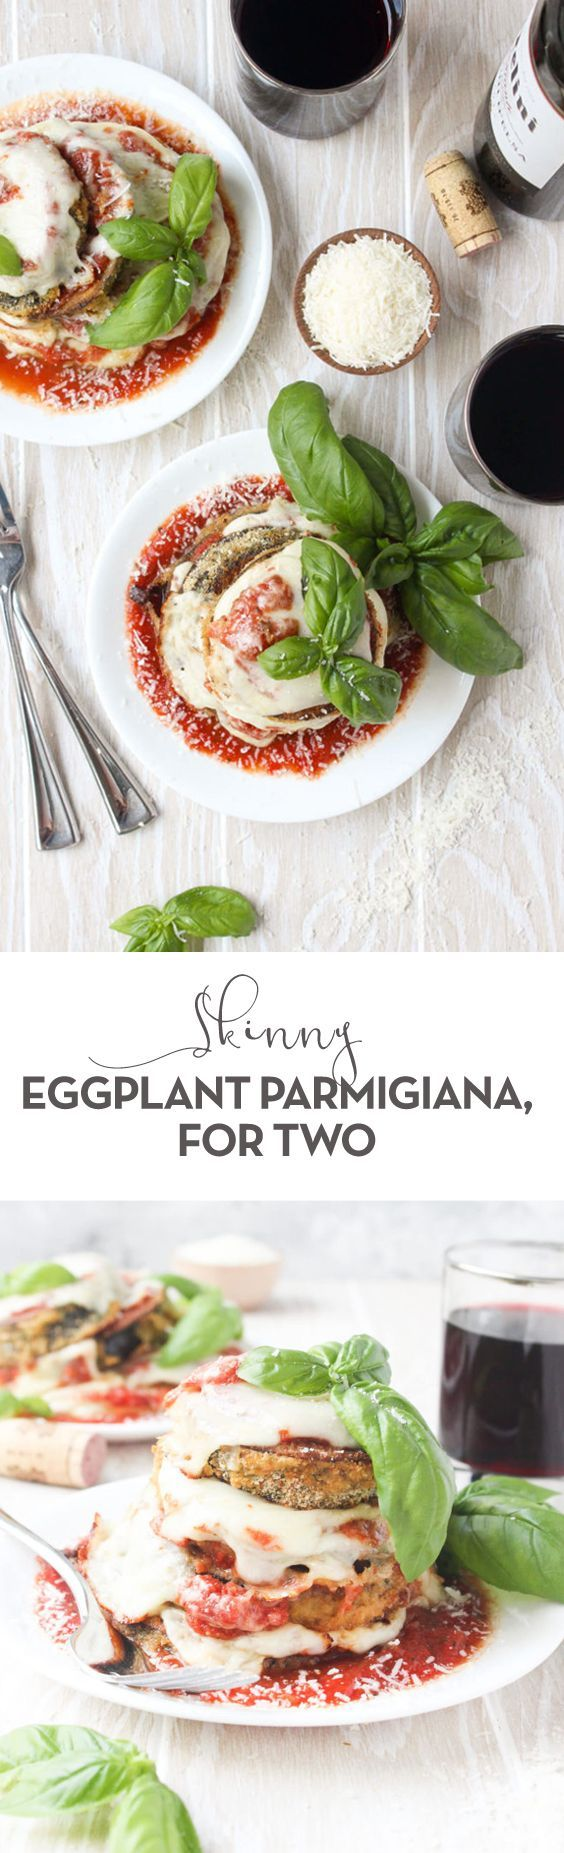 Ready in less than 30 min, Skinny Eggplant Parmigiana is a dish you can't resist! A baked version of the Italian classic, you'll love this light and lean dinner. | vegetarian comfort food, easy weeknight dinner, quick and healthy recipes, plant based, easy Italian classic recipe